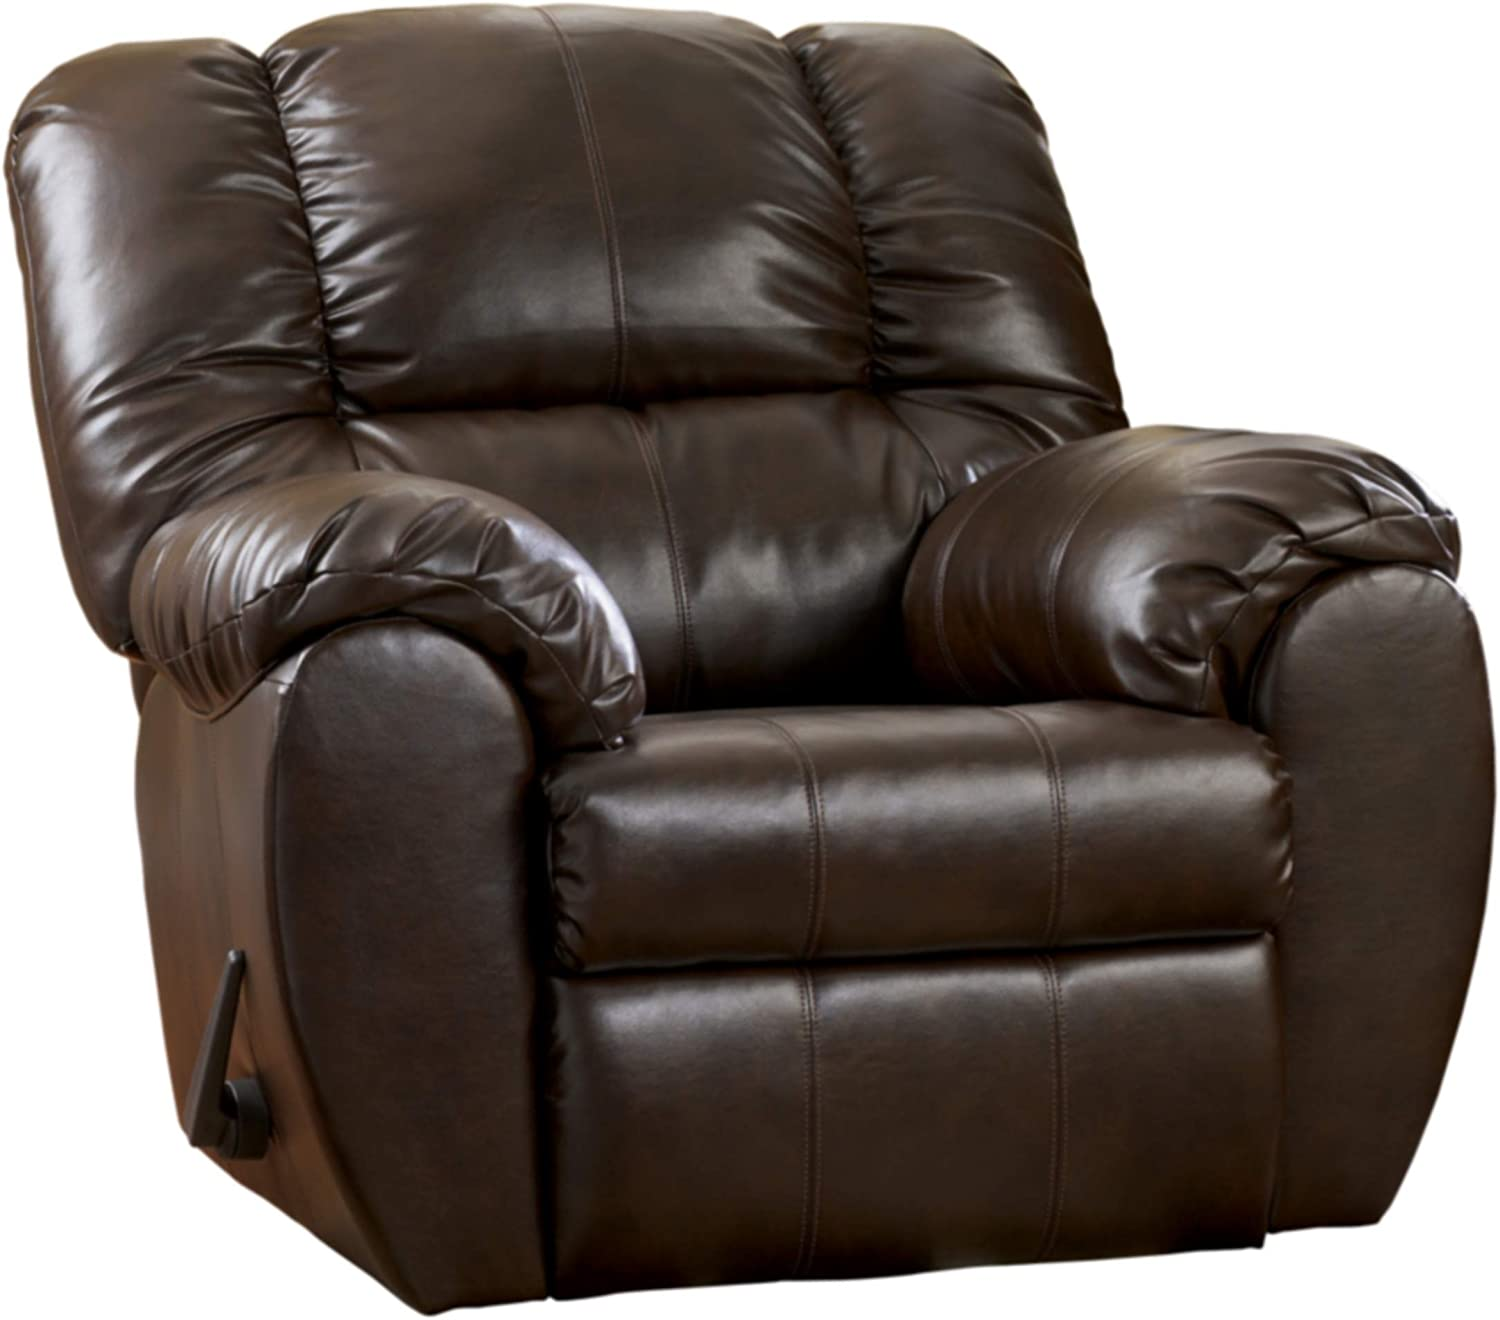 Signature Design by Ashley Dylan Rocker Recliner Espresso